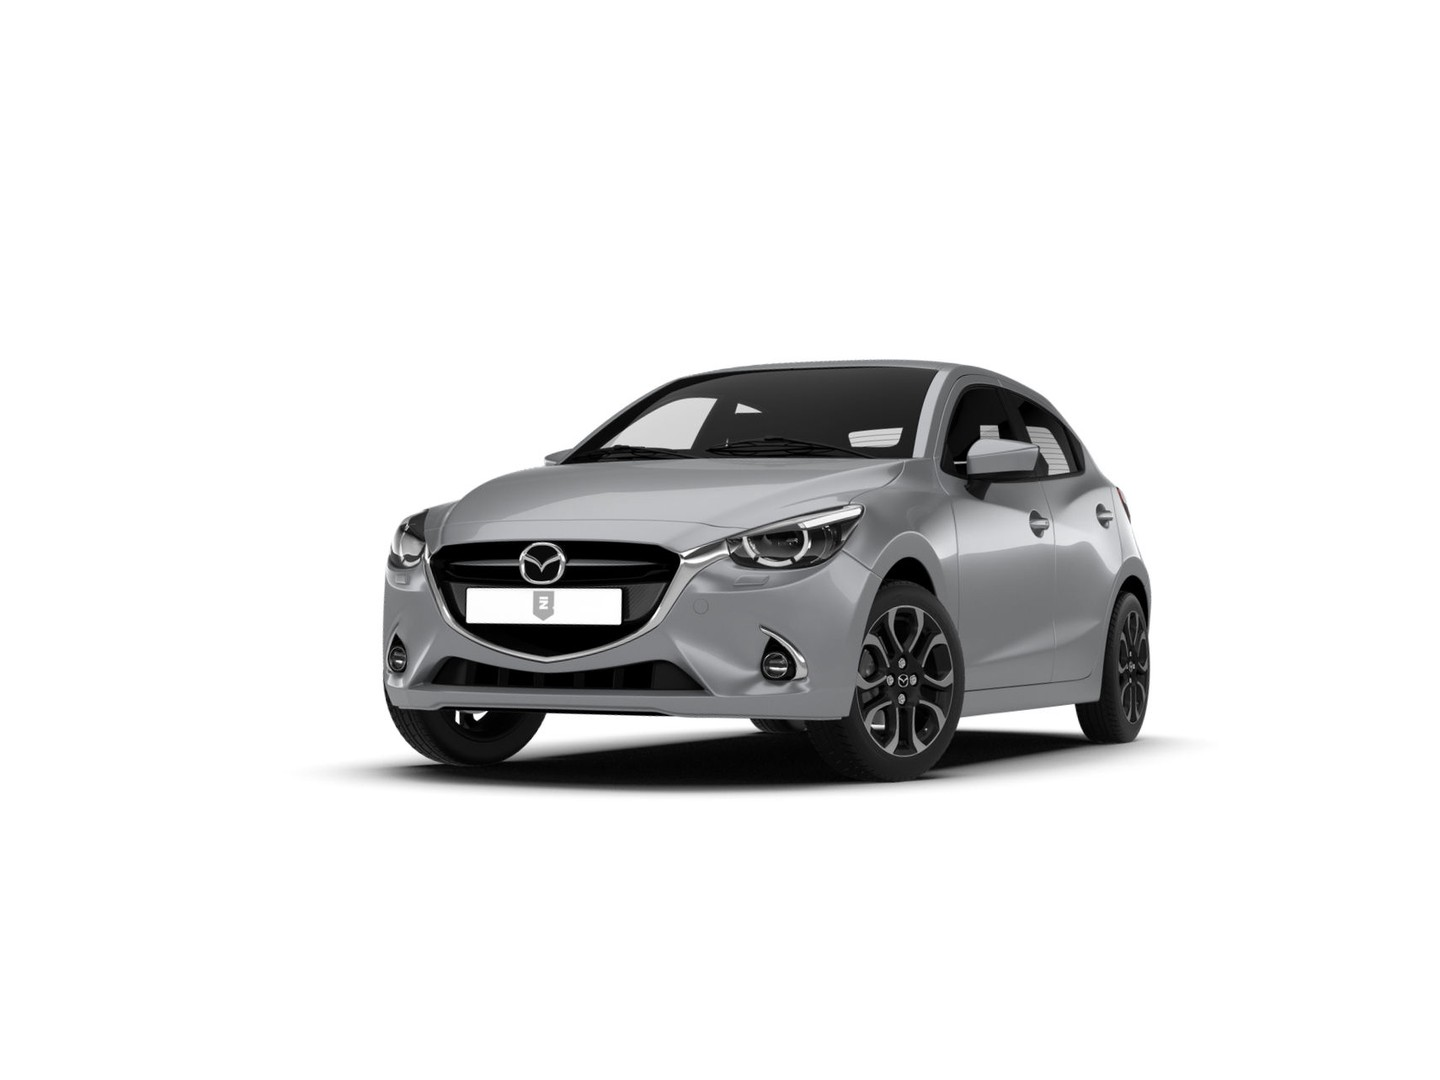 Mazda 2 Luxury hatchback